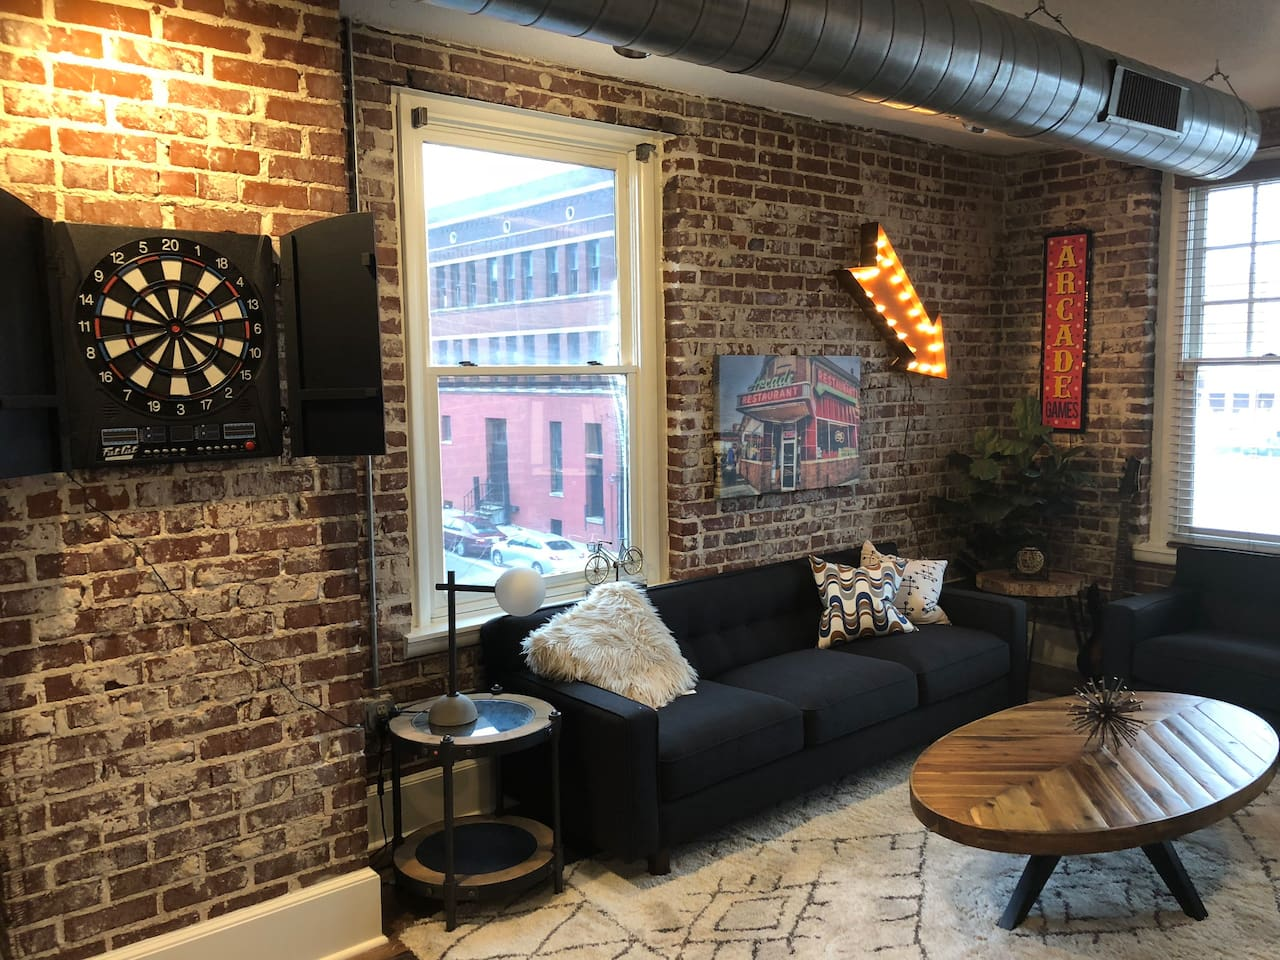 Look no further! From the backdrop of the Memphis skyline to the high end furnishings, this unit has it all. Tastefully local decor and the best games in the business!